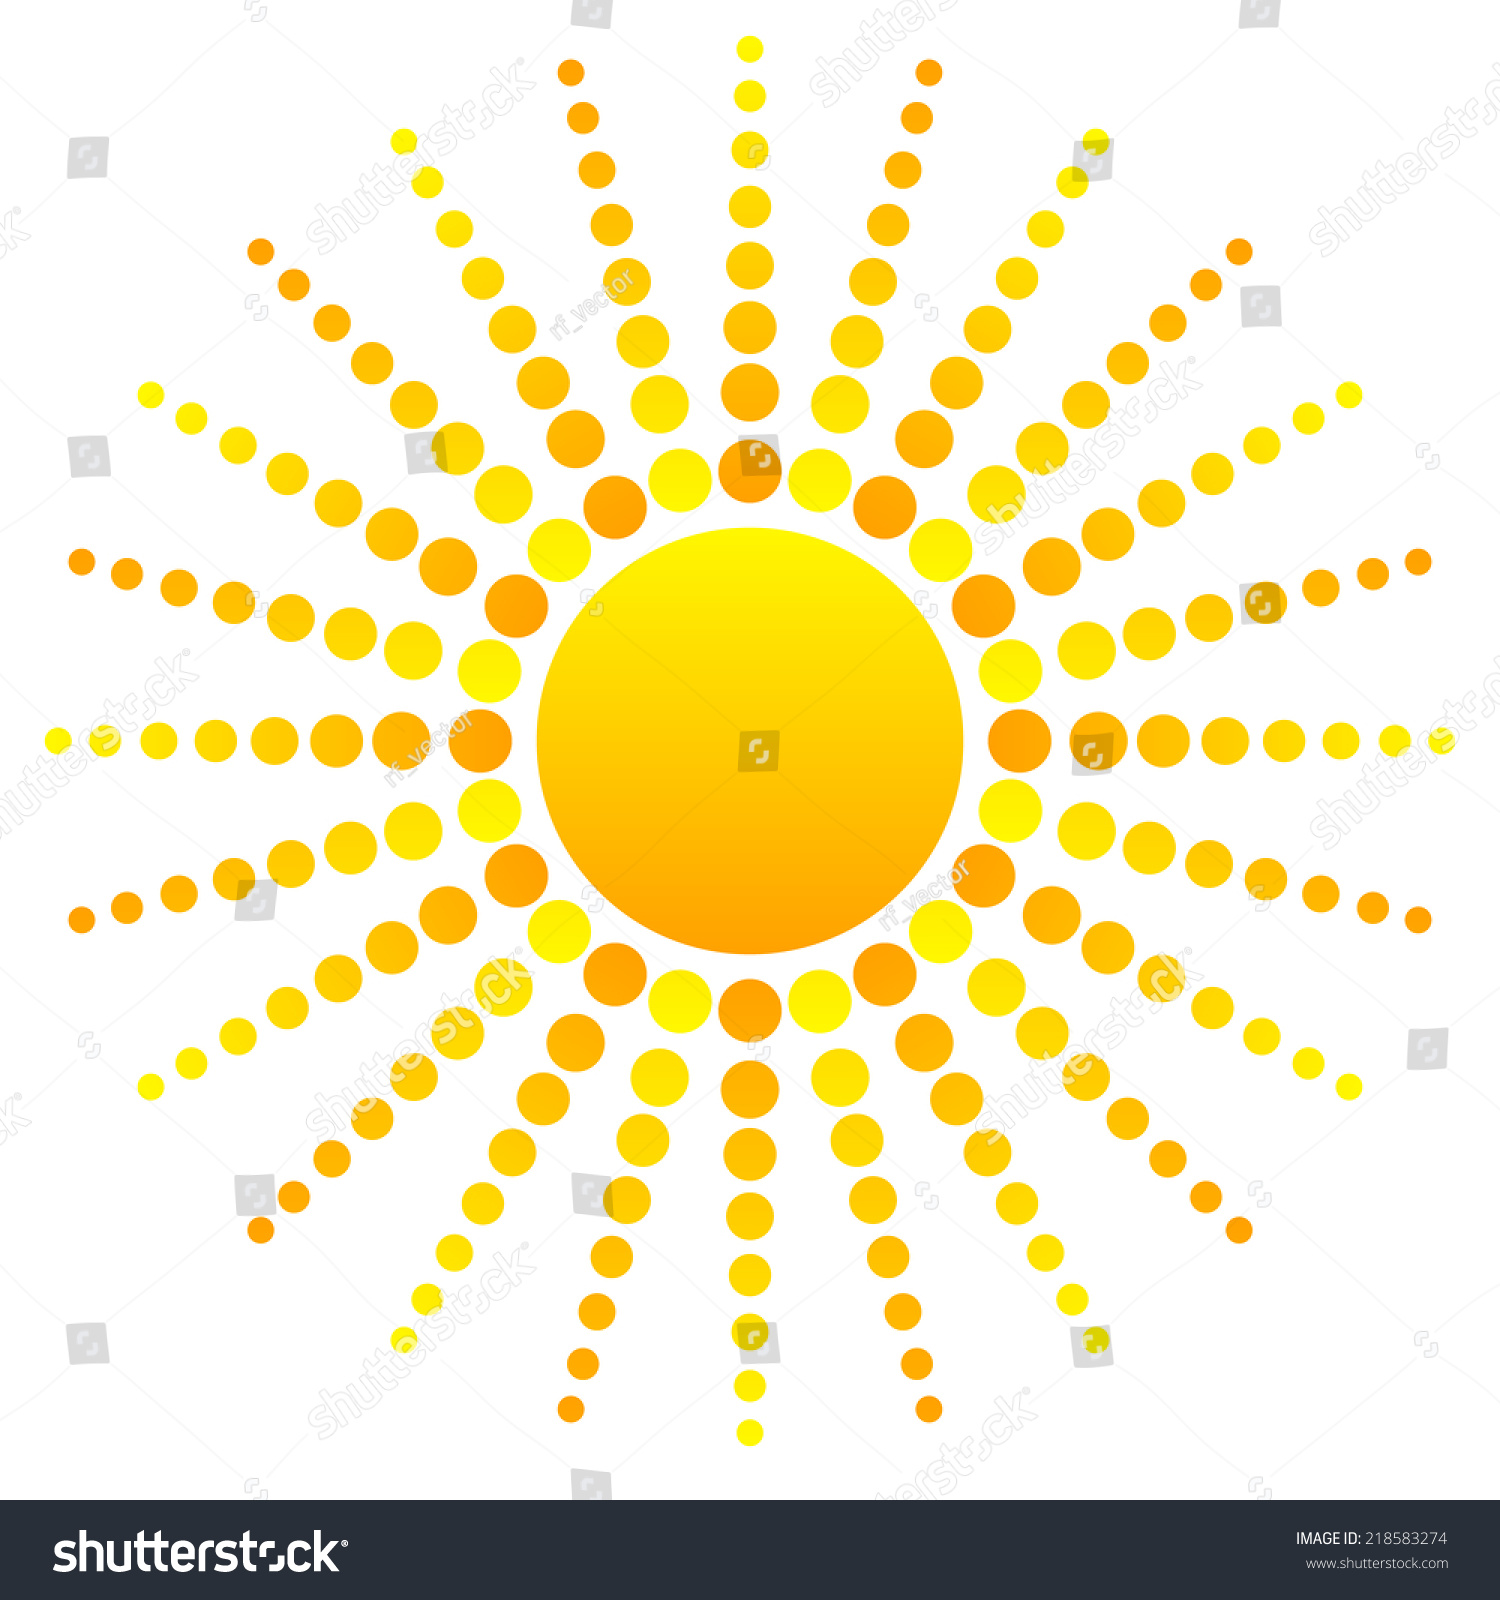 hight resolution of abstract sun clipart